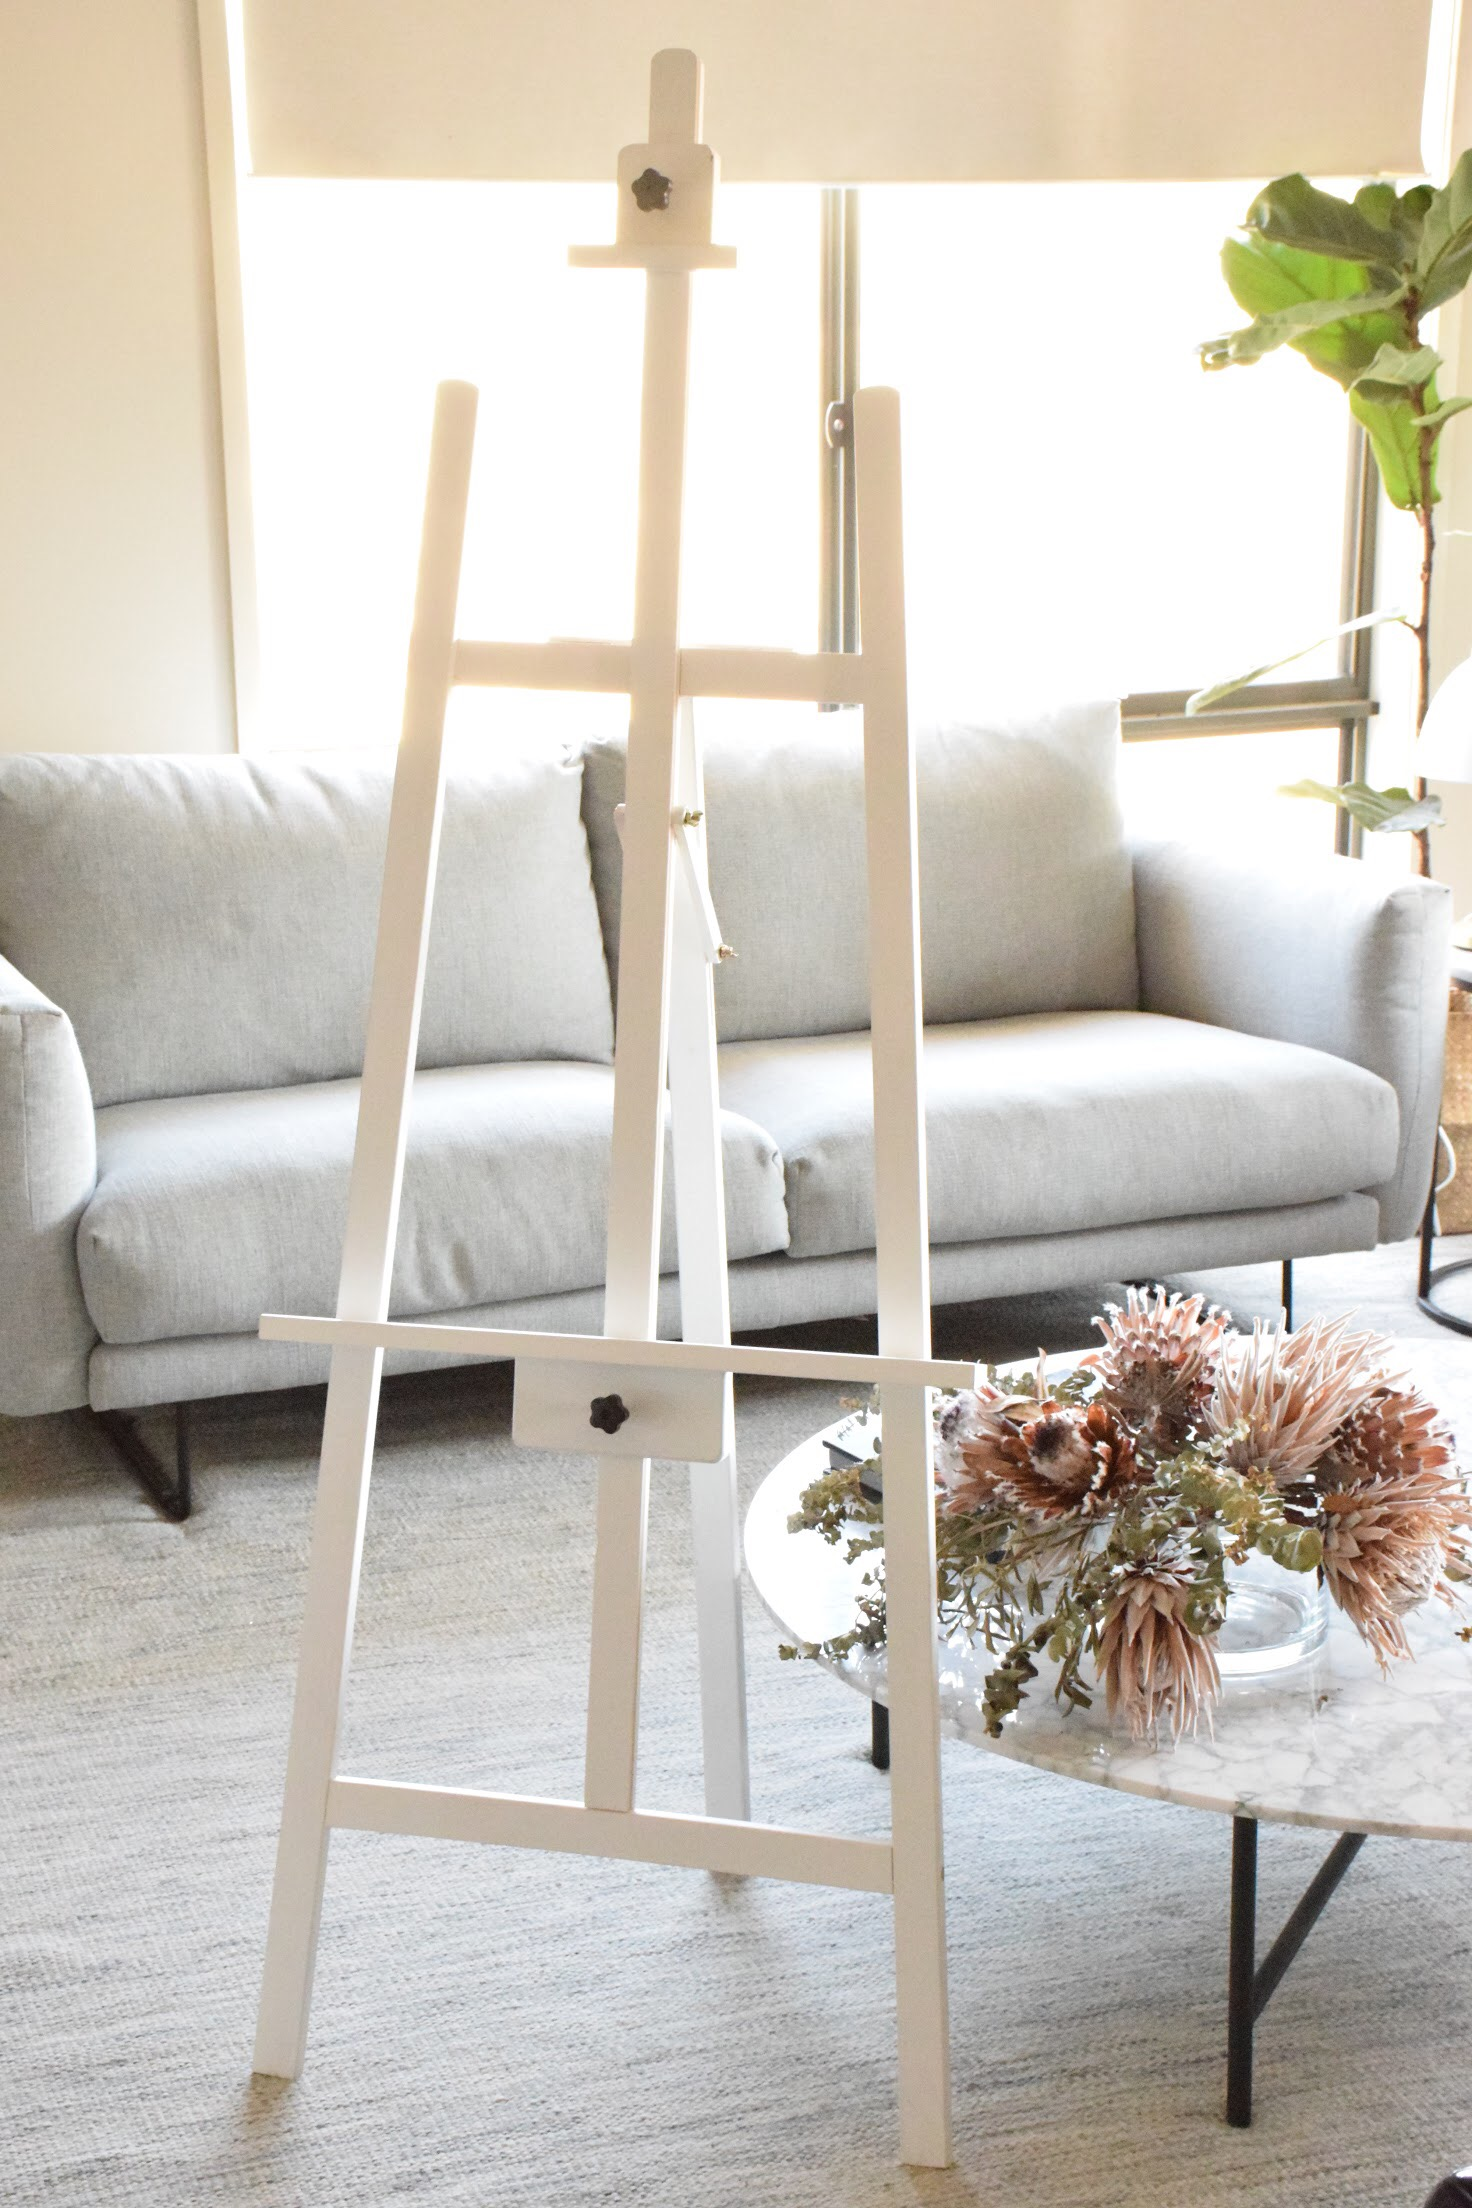 WHITE EASEL. PLEASE CONTACT ME VIA FACEBOOK BUSINESS PAGE OR EMAIL FOR BOOKINGS. (LOCAL WANGARATTA AREA ONLY)